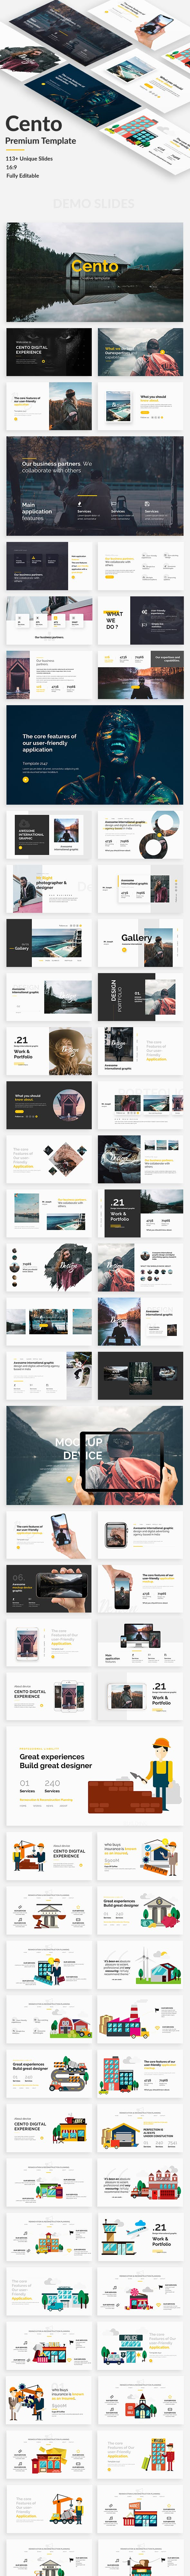 cento design premium powerpoint template by bypaintdesign graphicriver